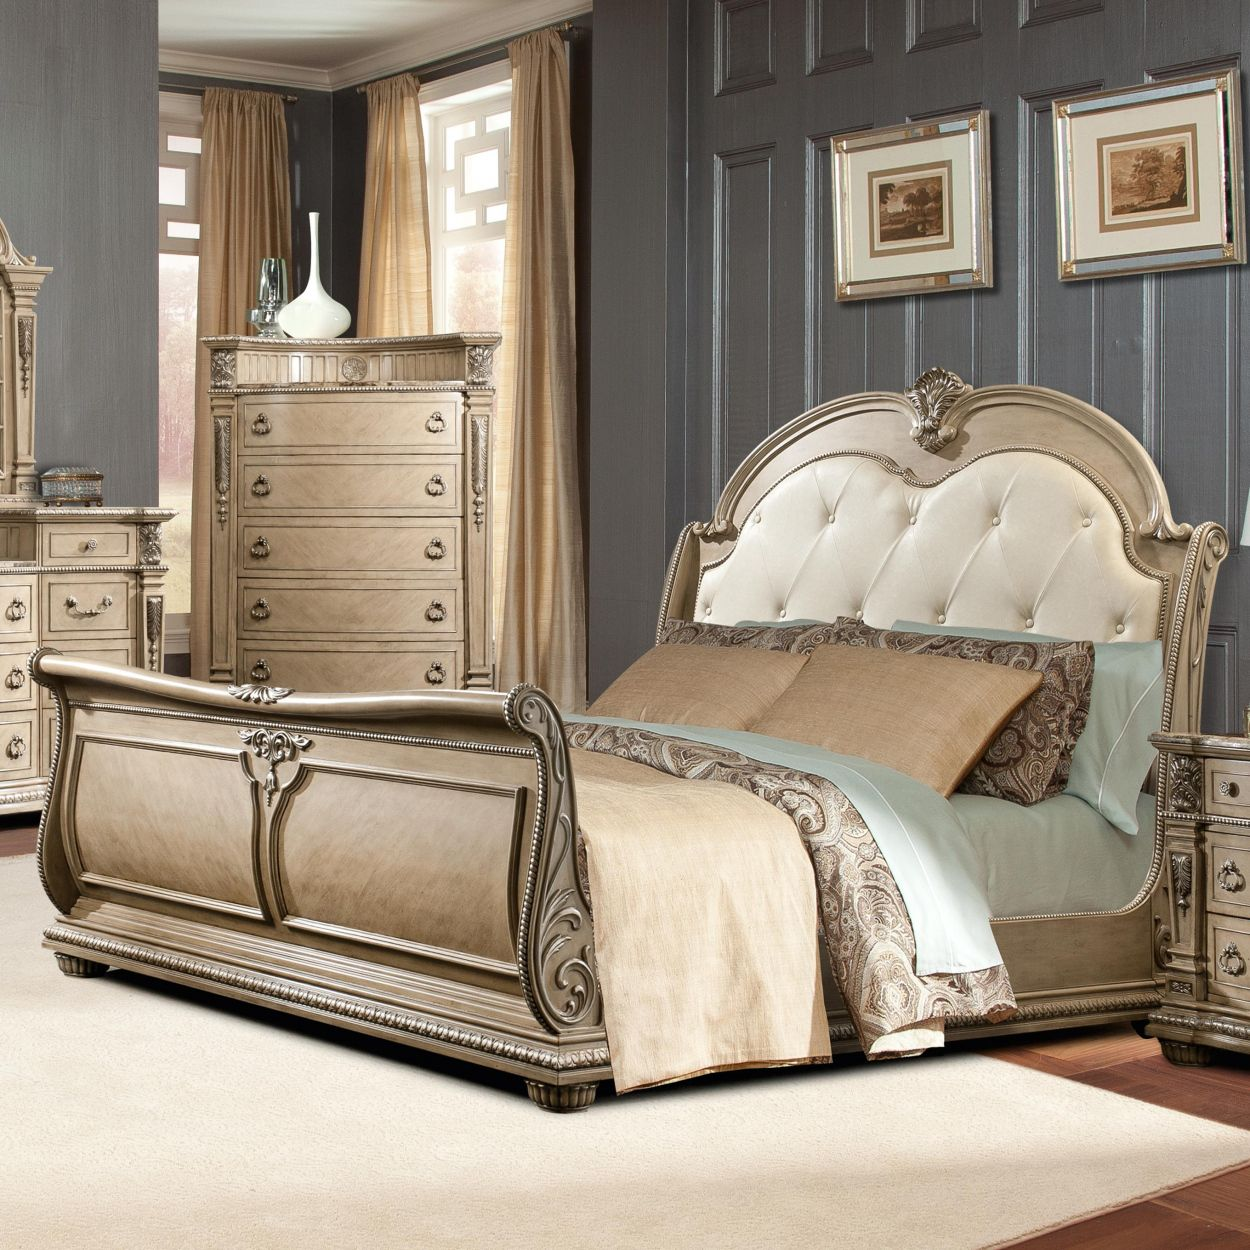 Bedroom Furniture asheville Nc - Cool Rustic Furniture Check more at ...